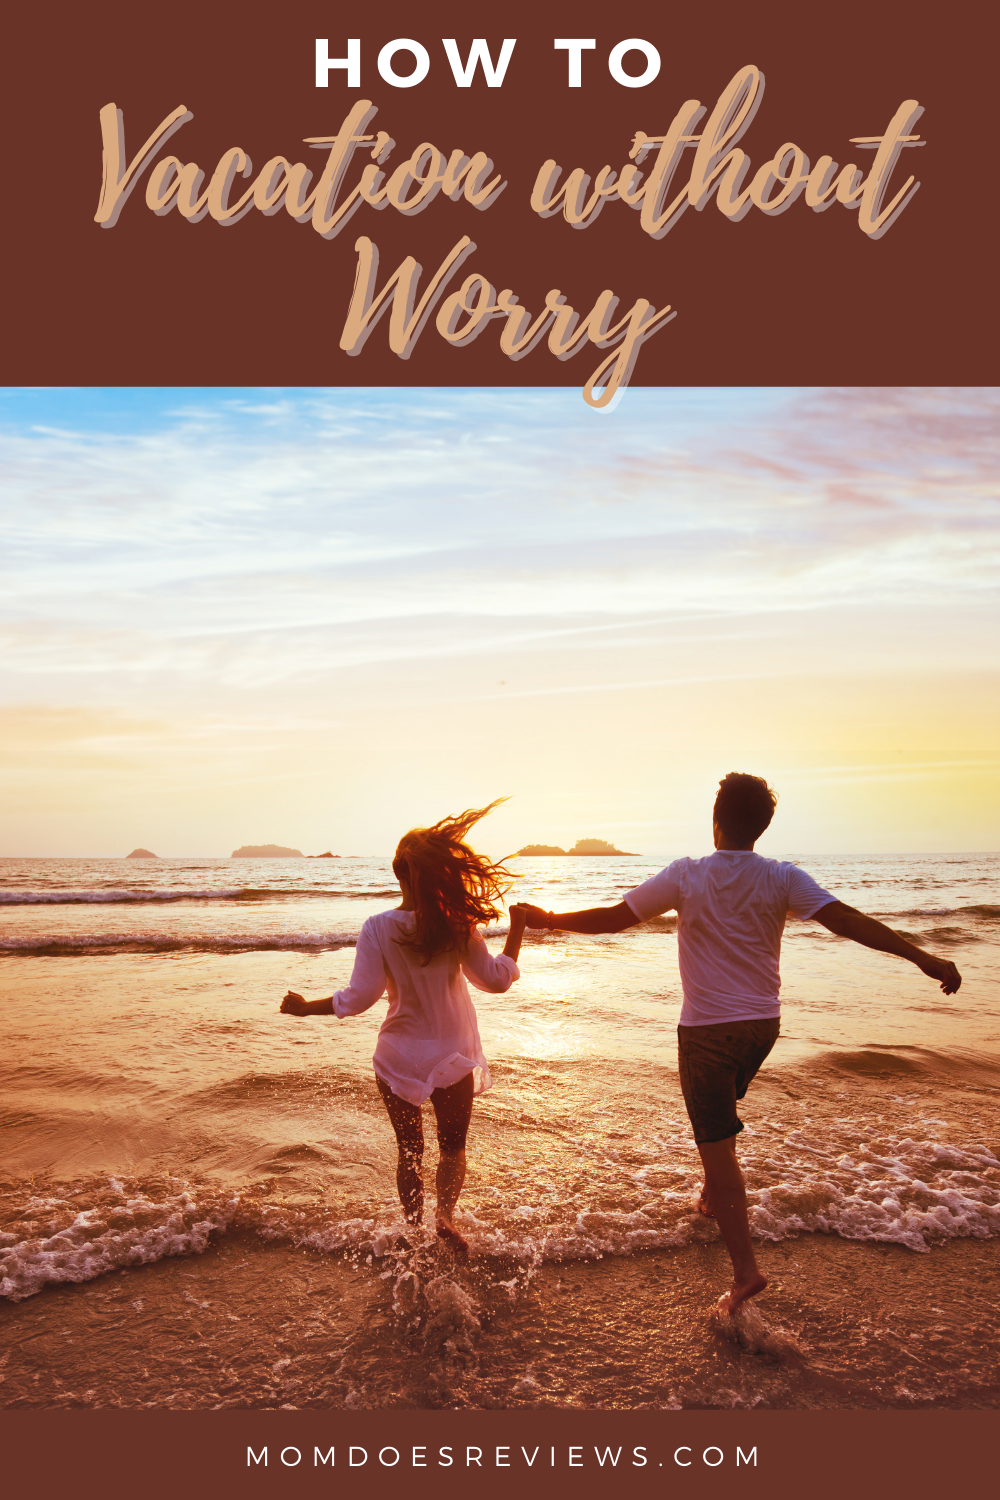 Head Off On Vacation Free Of Anxiety And Worry